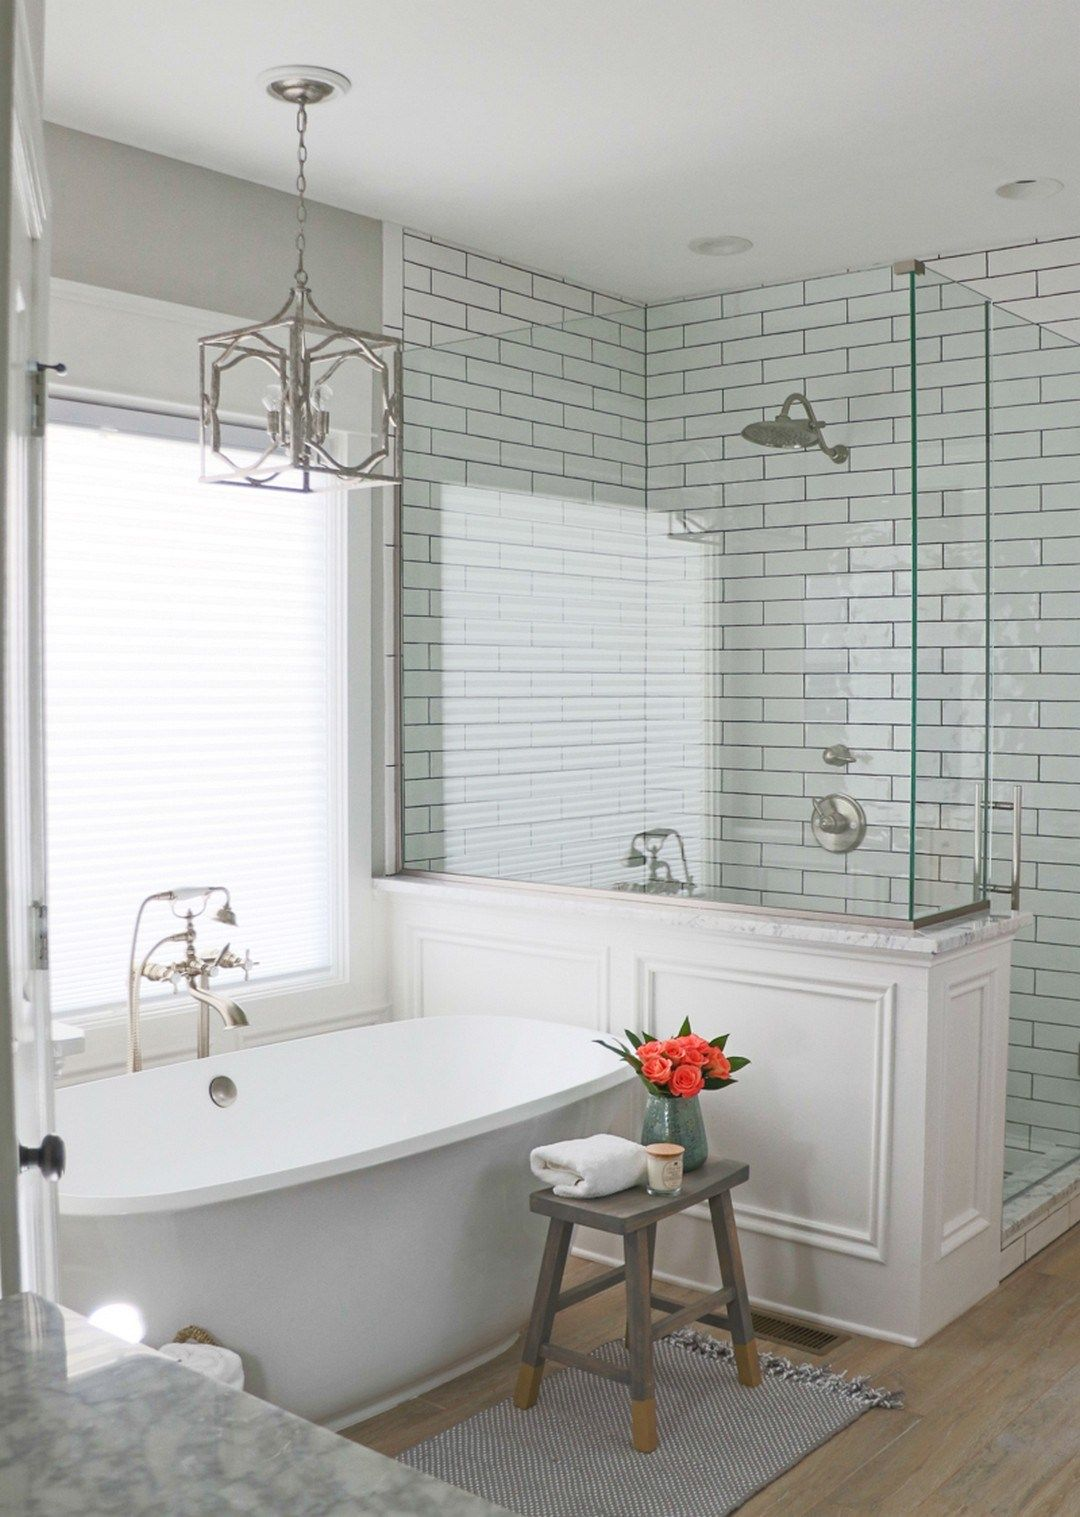 99 beautiful urban farmhouse master bathroom remodel 28 on beautiful farmhouse bathroom shower decor ideas and remodel an extraordinary design id=28821